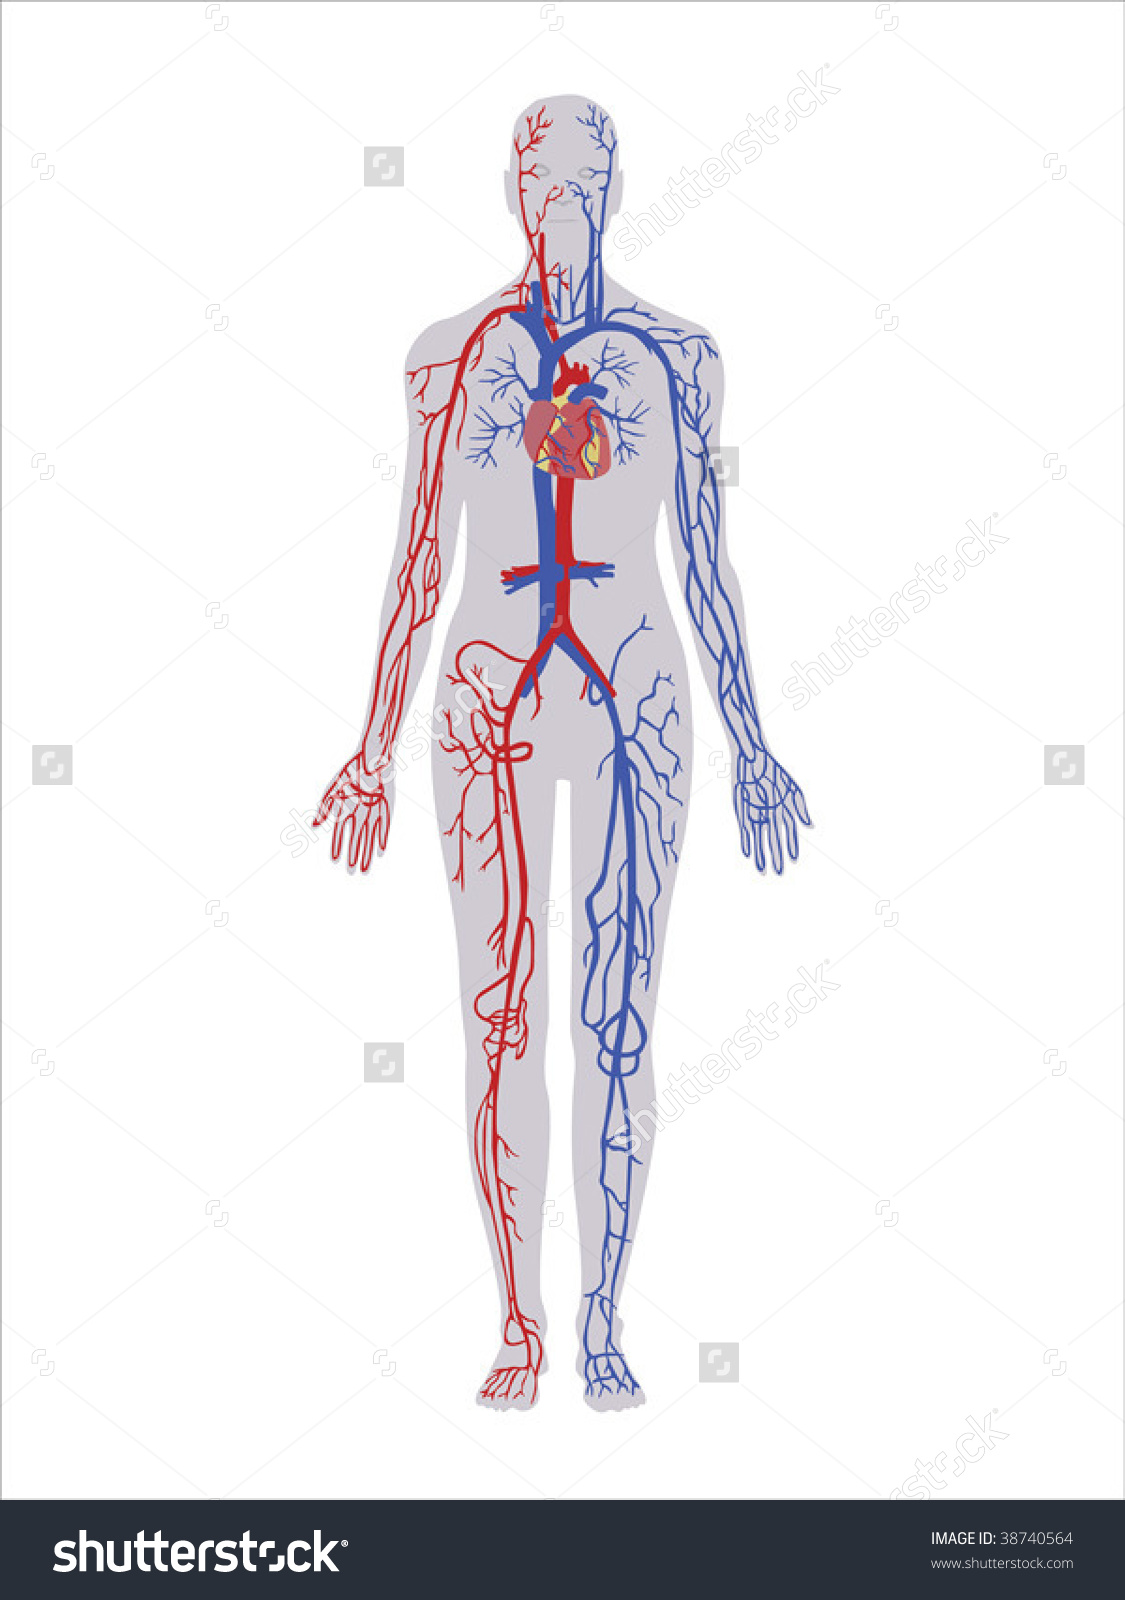 Artery Diagram Whole Body Full Body Circulatory System Diagram Best